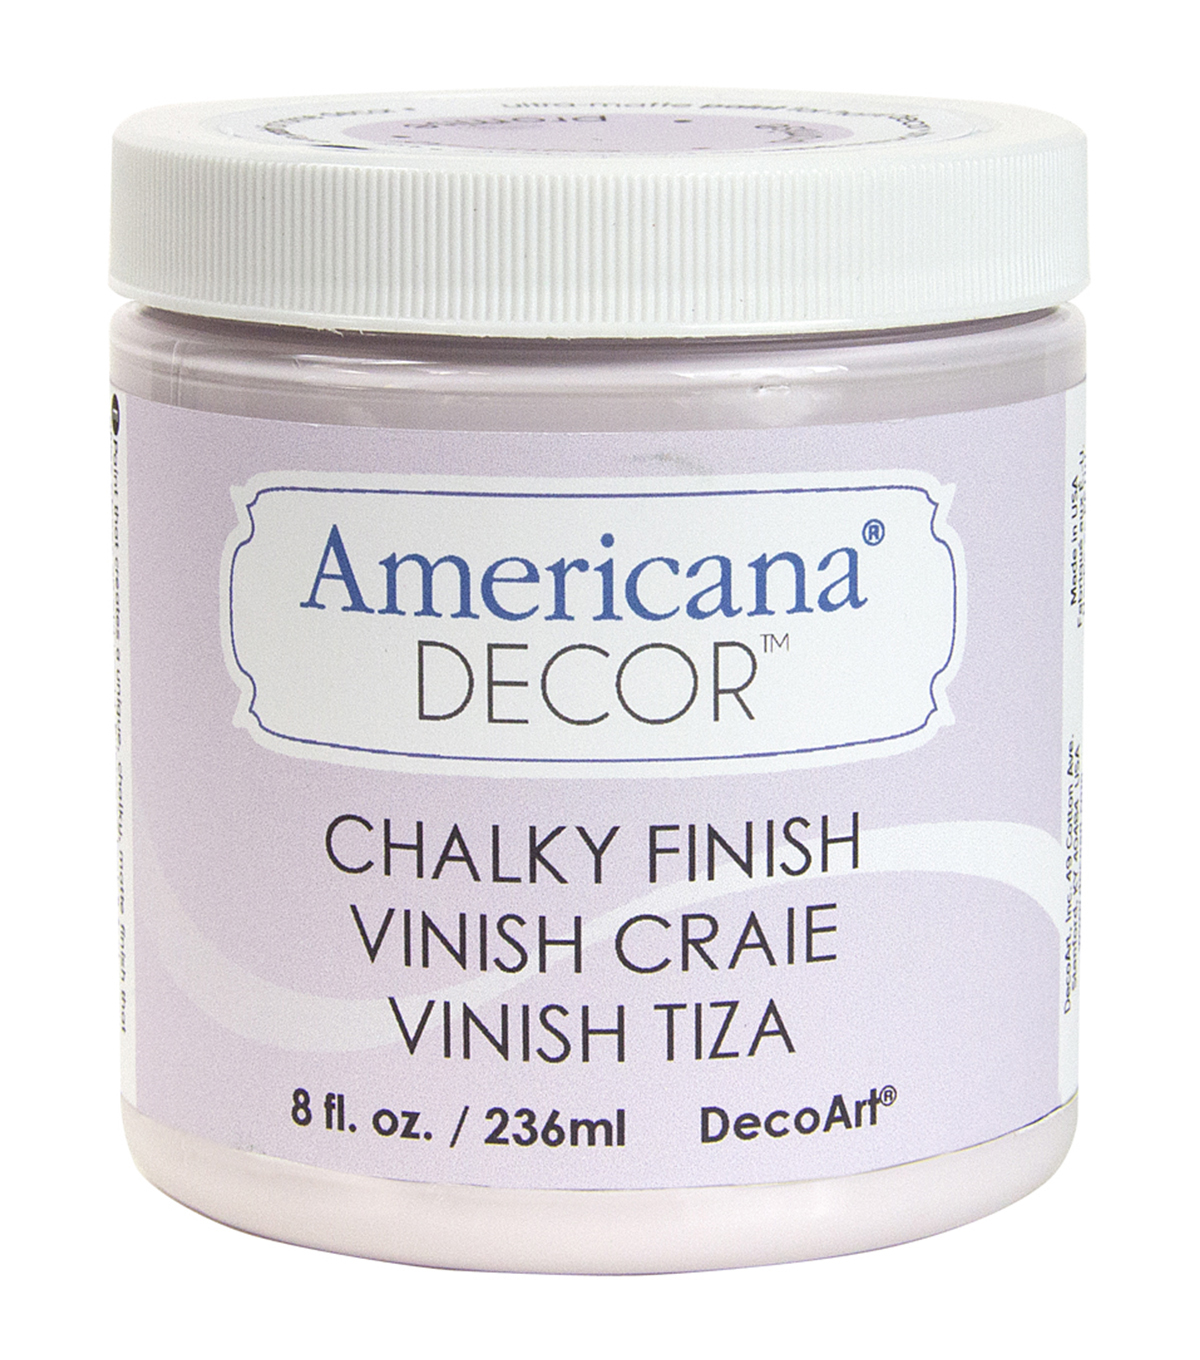 DecoArt Americana Chalky Finish Paint 8oz, Promise